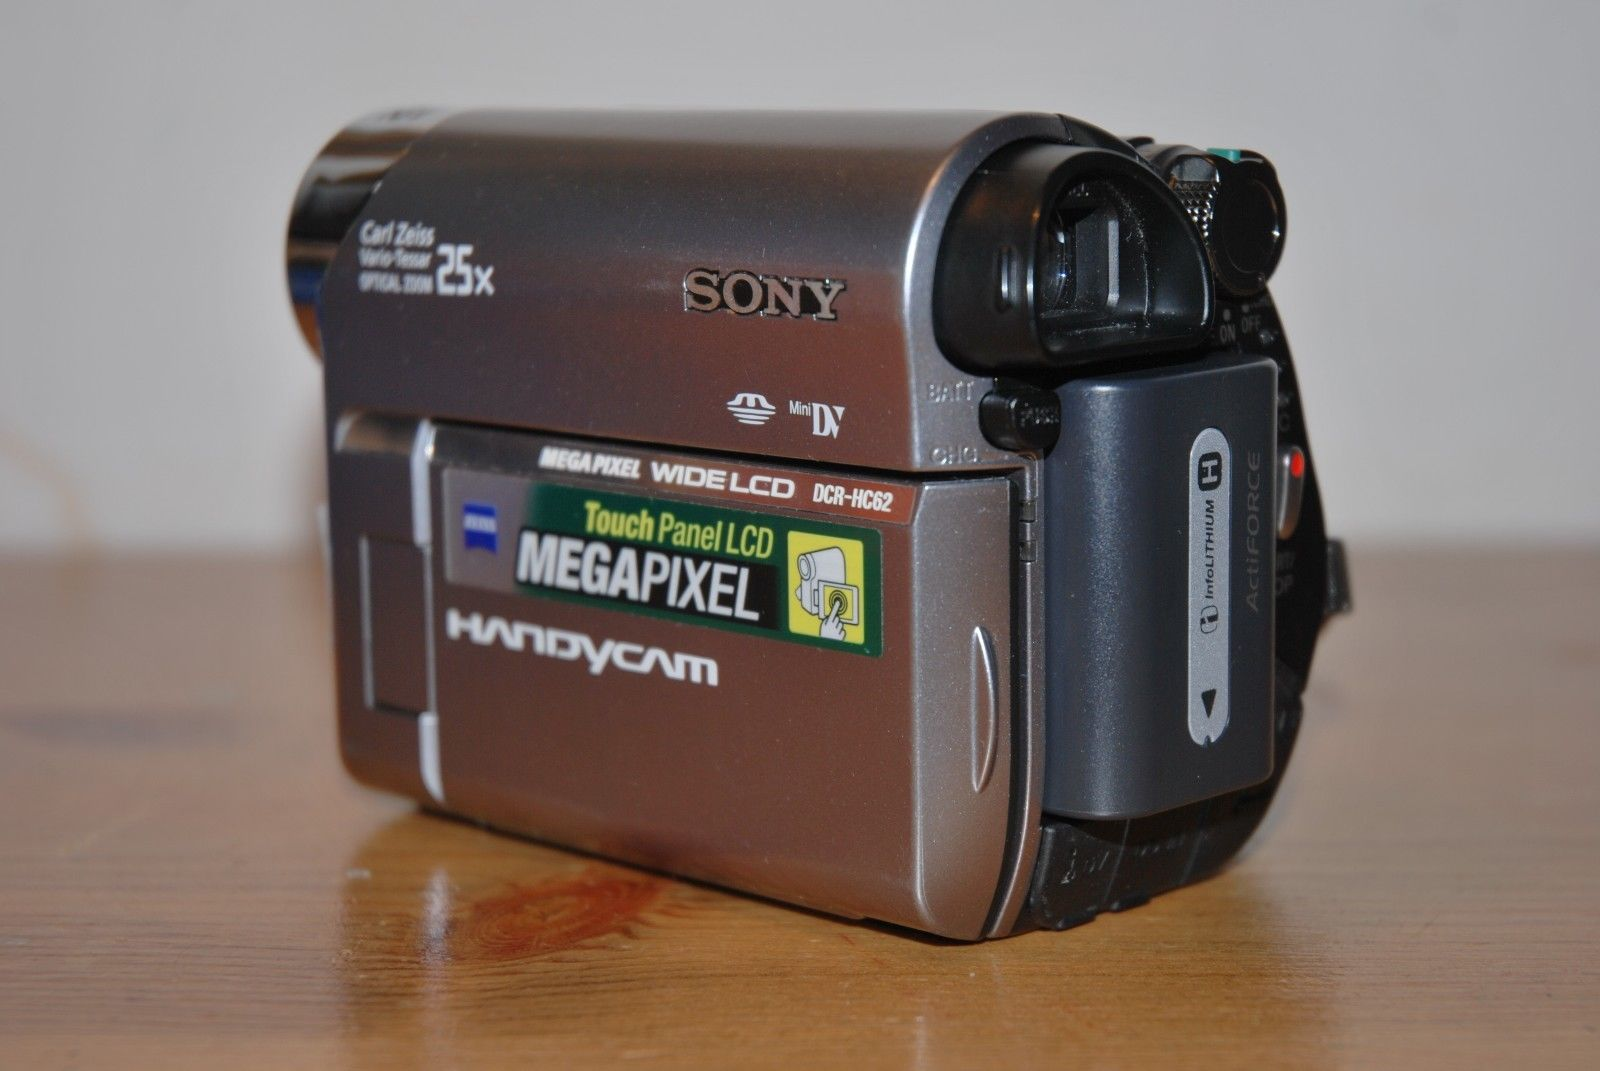 Importing Sony DCR-HC62 AVCHD video into Premiere Pro